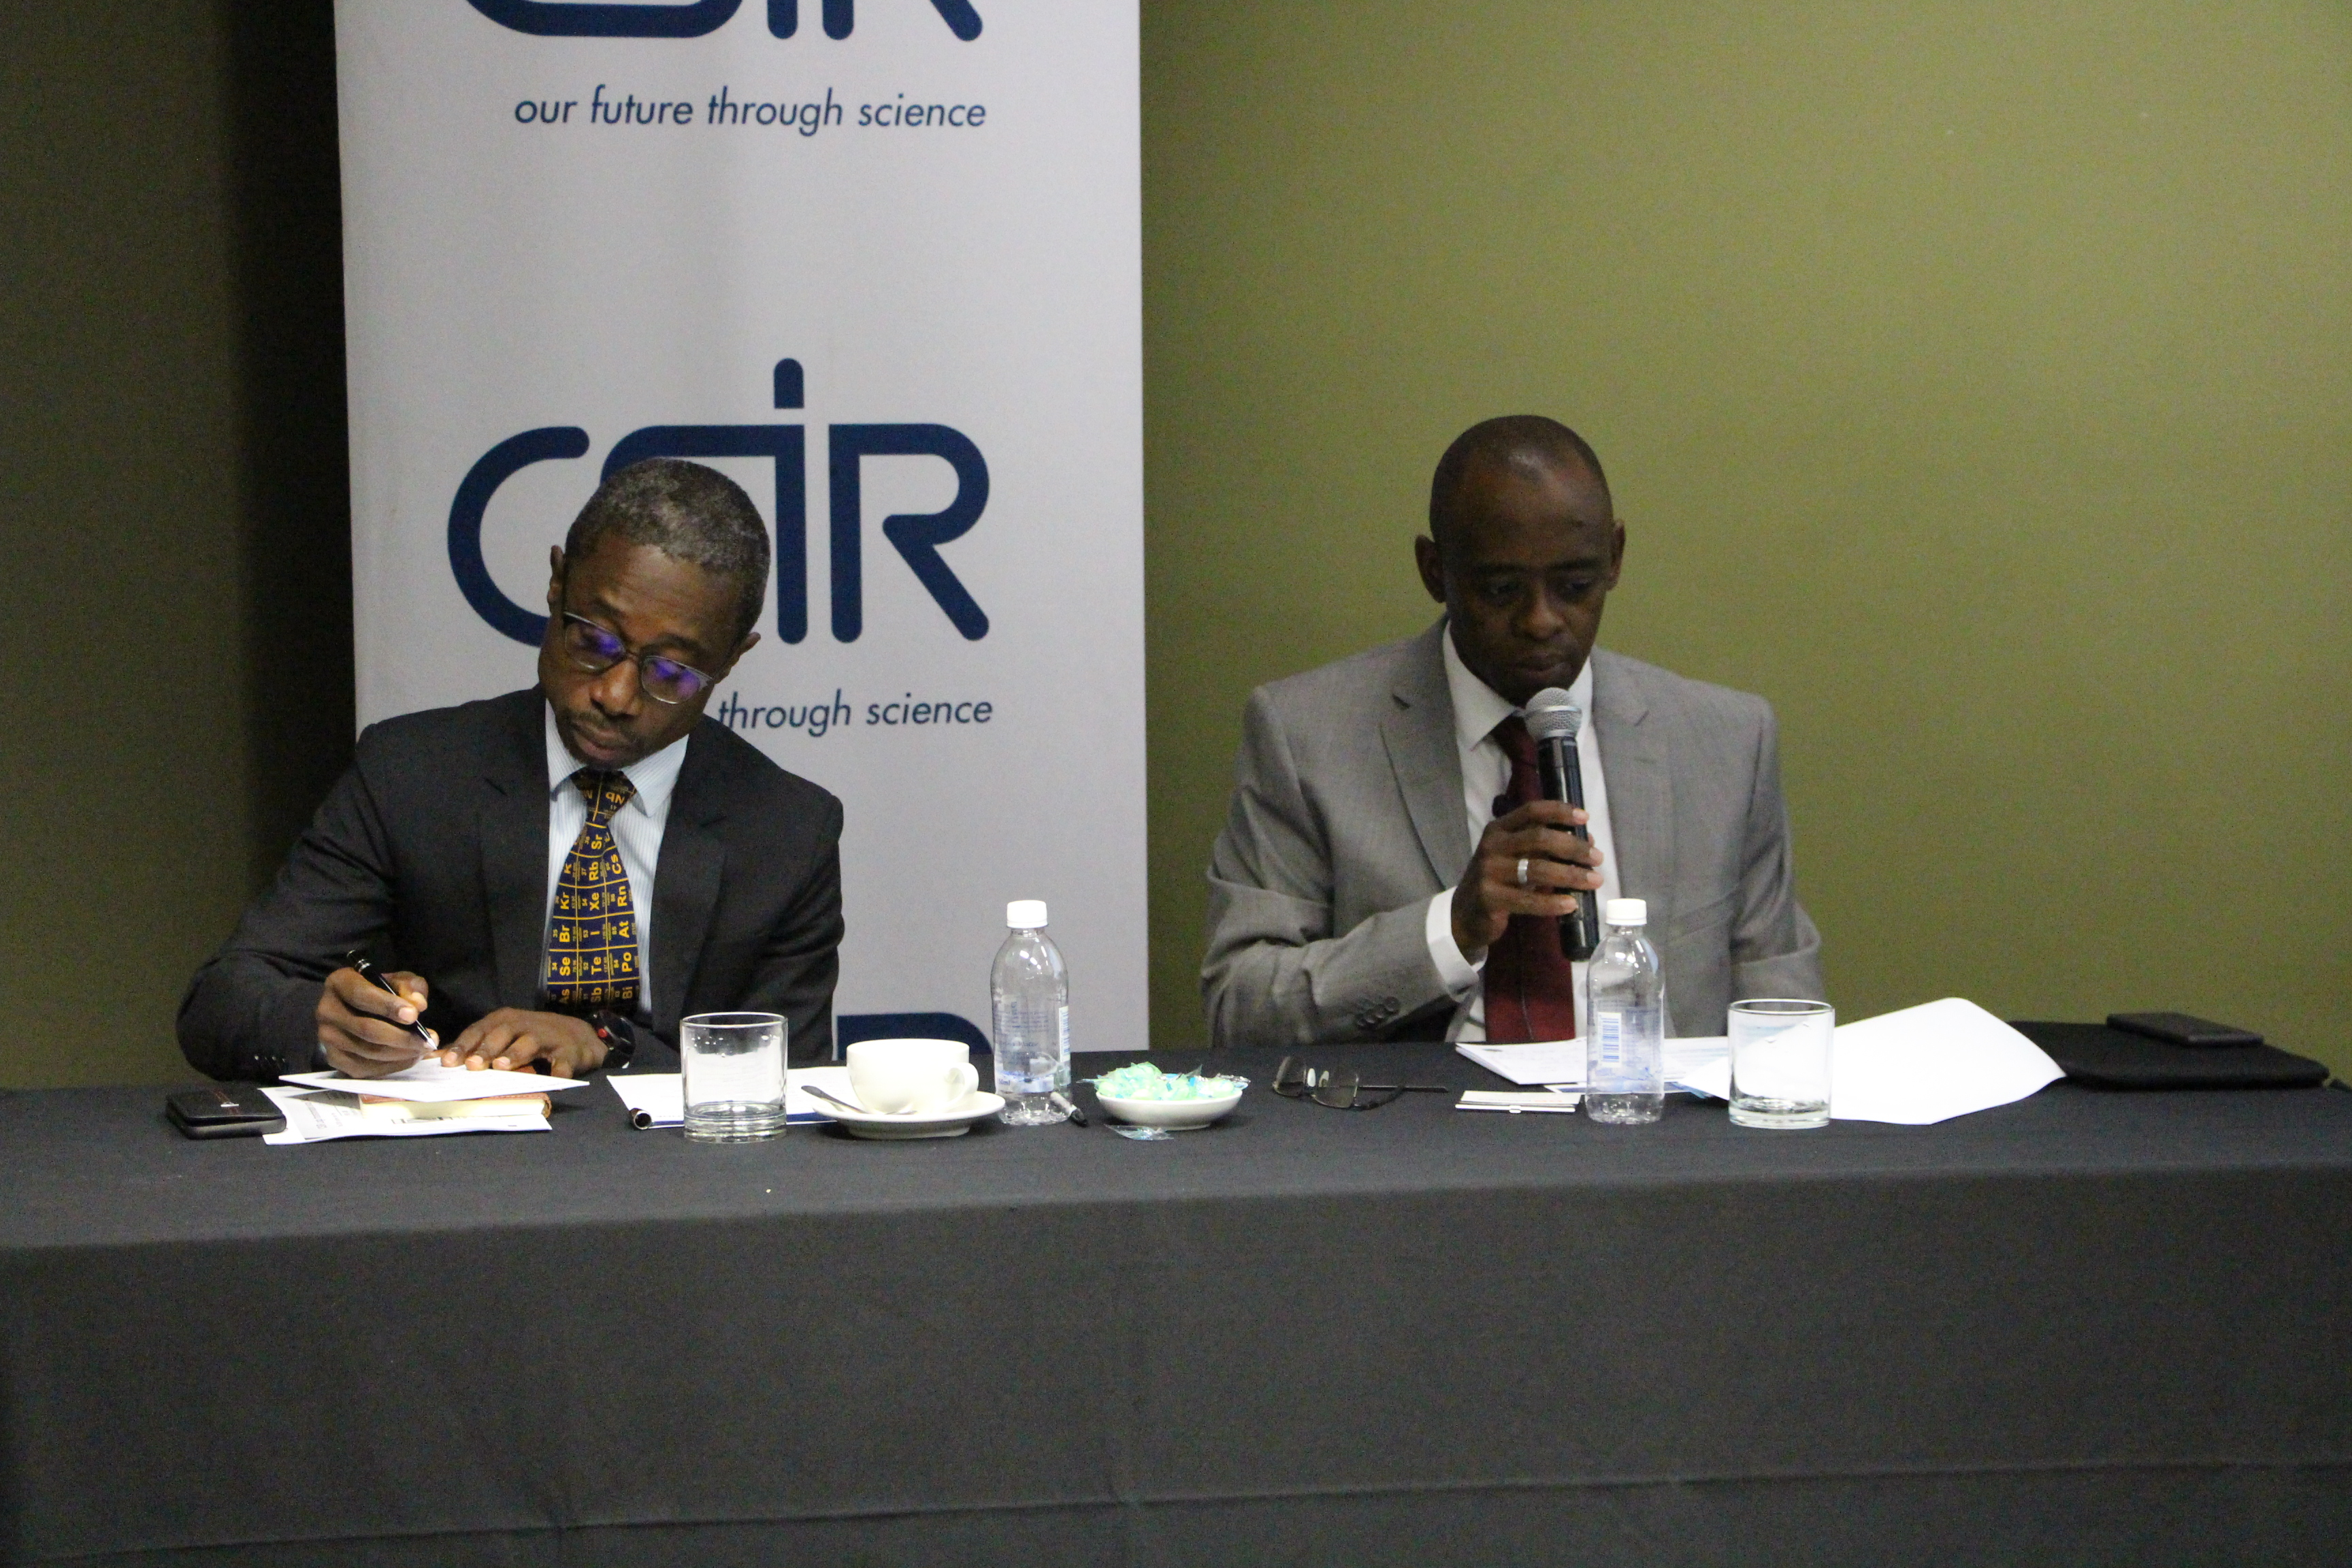 Prof. Thokozani Majozi (Chairperson of the CSIR Board) and Dr Thulani Dlamini (CSIR CEO) at the announcment of the organisation's new strategy.